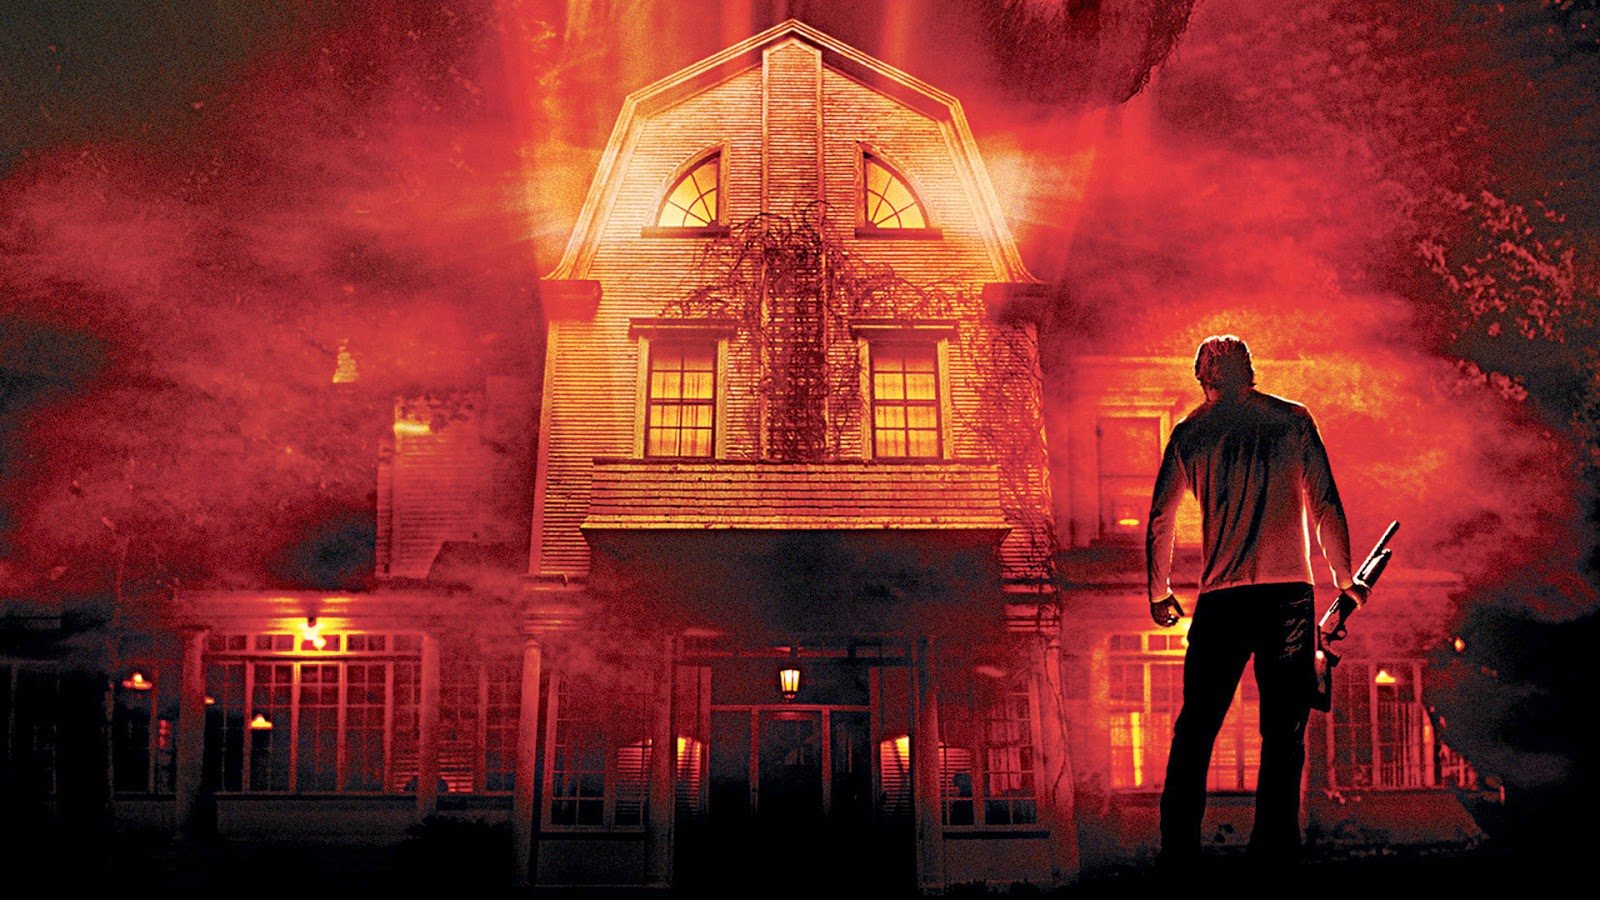 scary-movies-based-on-actual-incidences-Amityville-horror